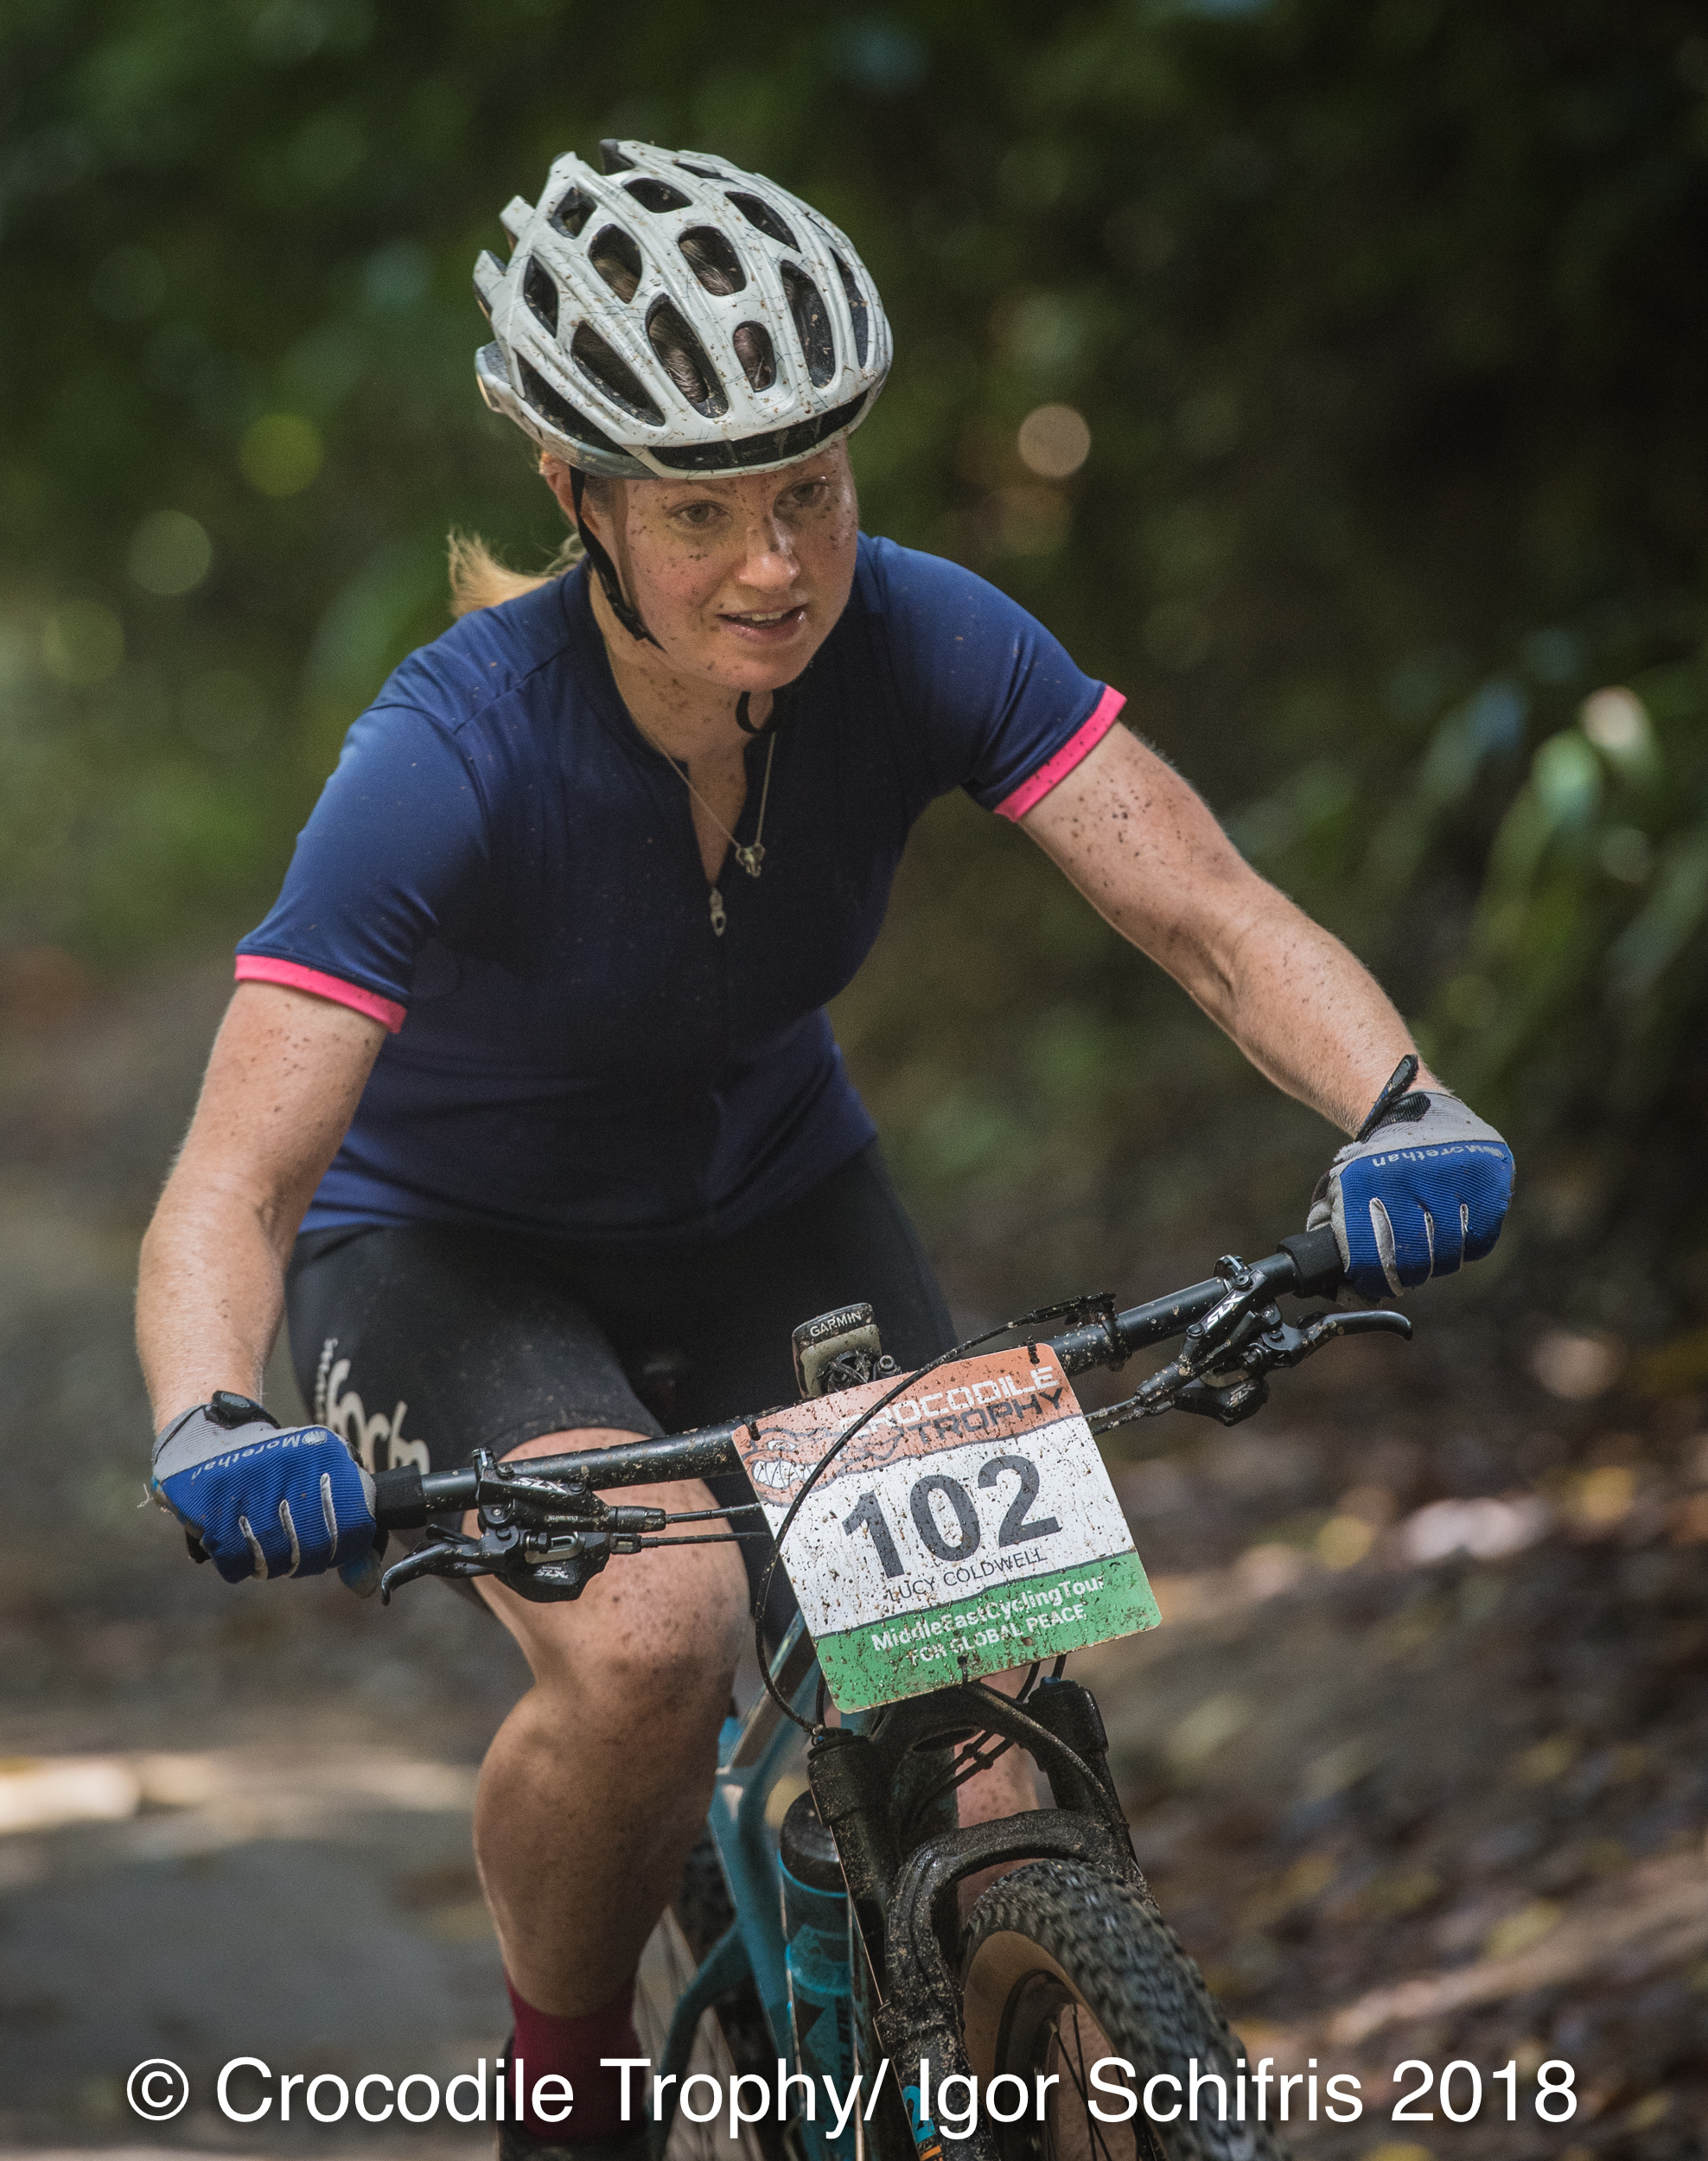 2018_Stage 2   1-2-3 Repeat at Herberton: Looser wins ahead of Huber and Nissen